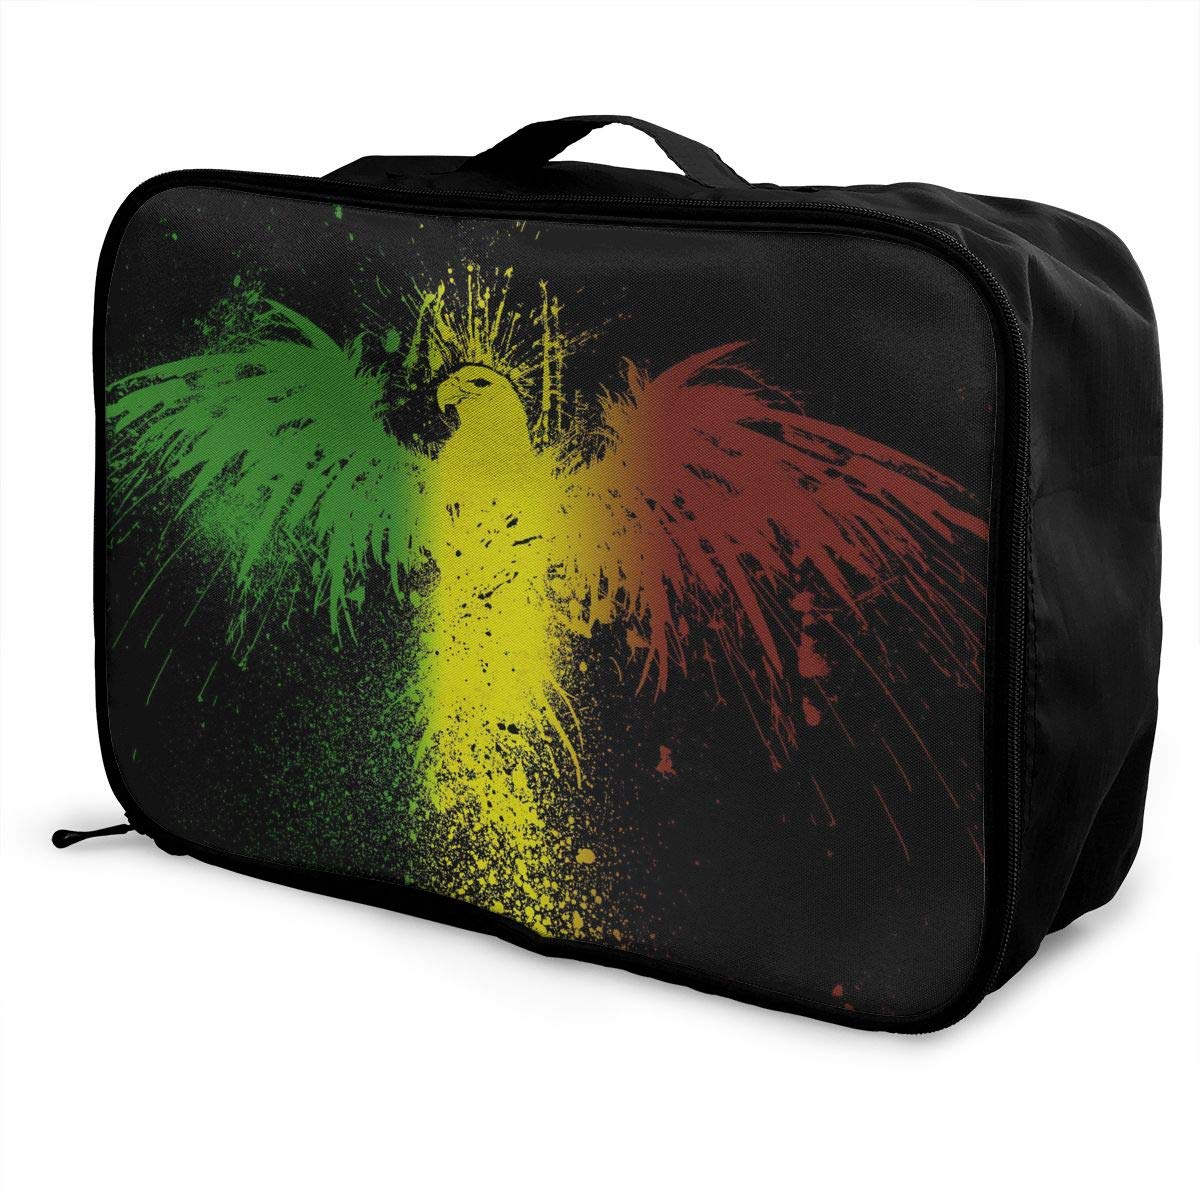 STWINW Lion Flag Travel Fashion Lightweight Large Capacity Portable Waterproof Foldable Storage Carry Luggage Bag Luggage Duffle Tote Bag Hanging Travel Toiletry Bag Travel Makeup Bag